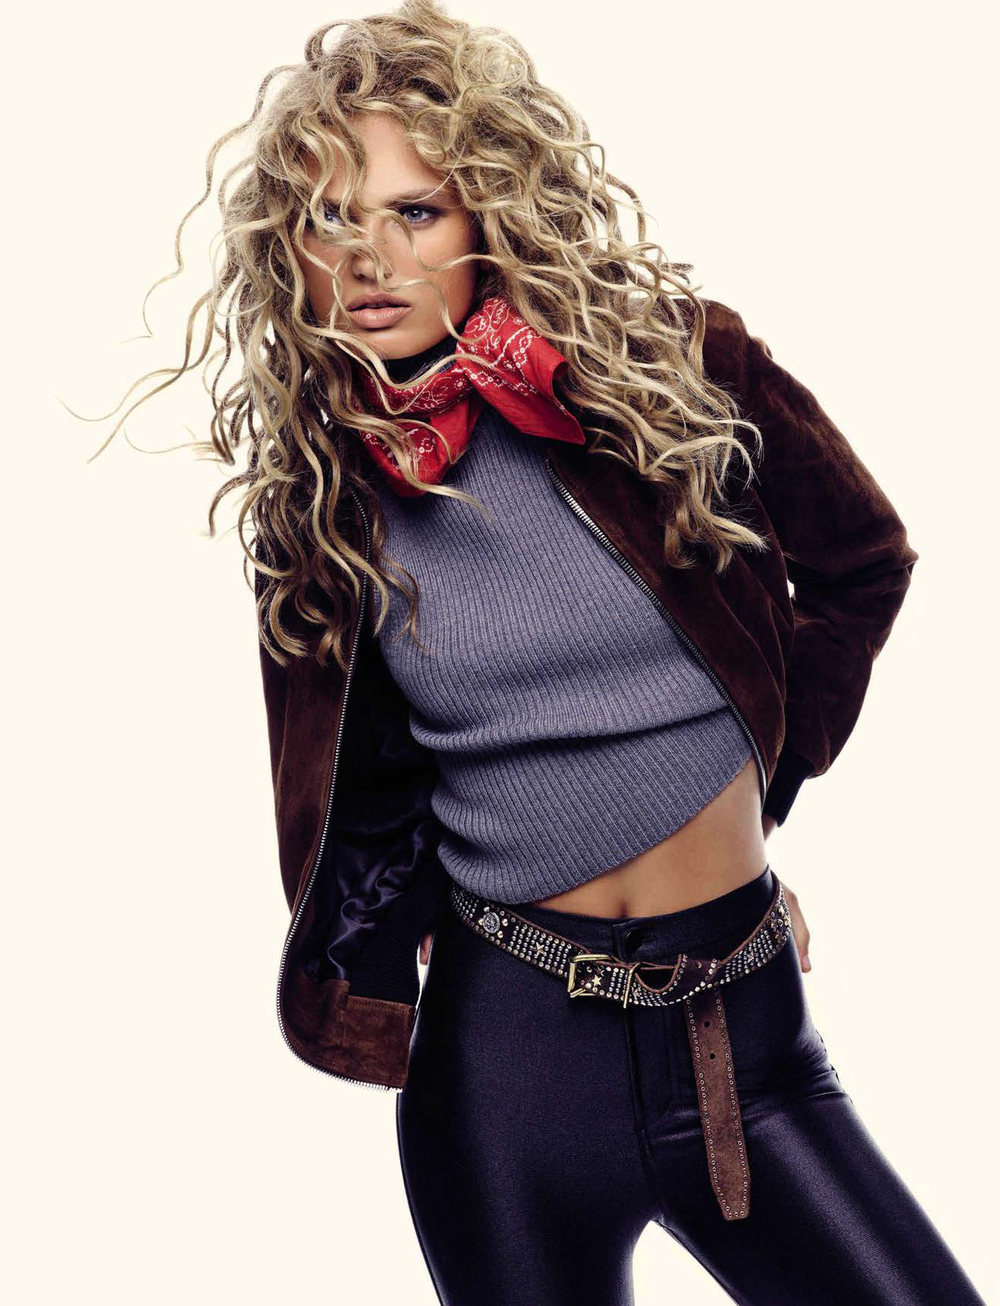 ea866-romee-strijd-by-nico-bustos-for-vogue-spain-october-2015-6.jpg